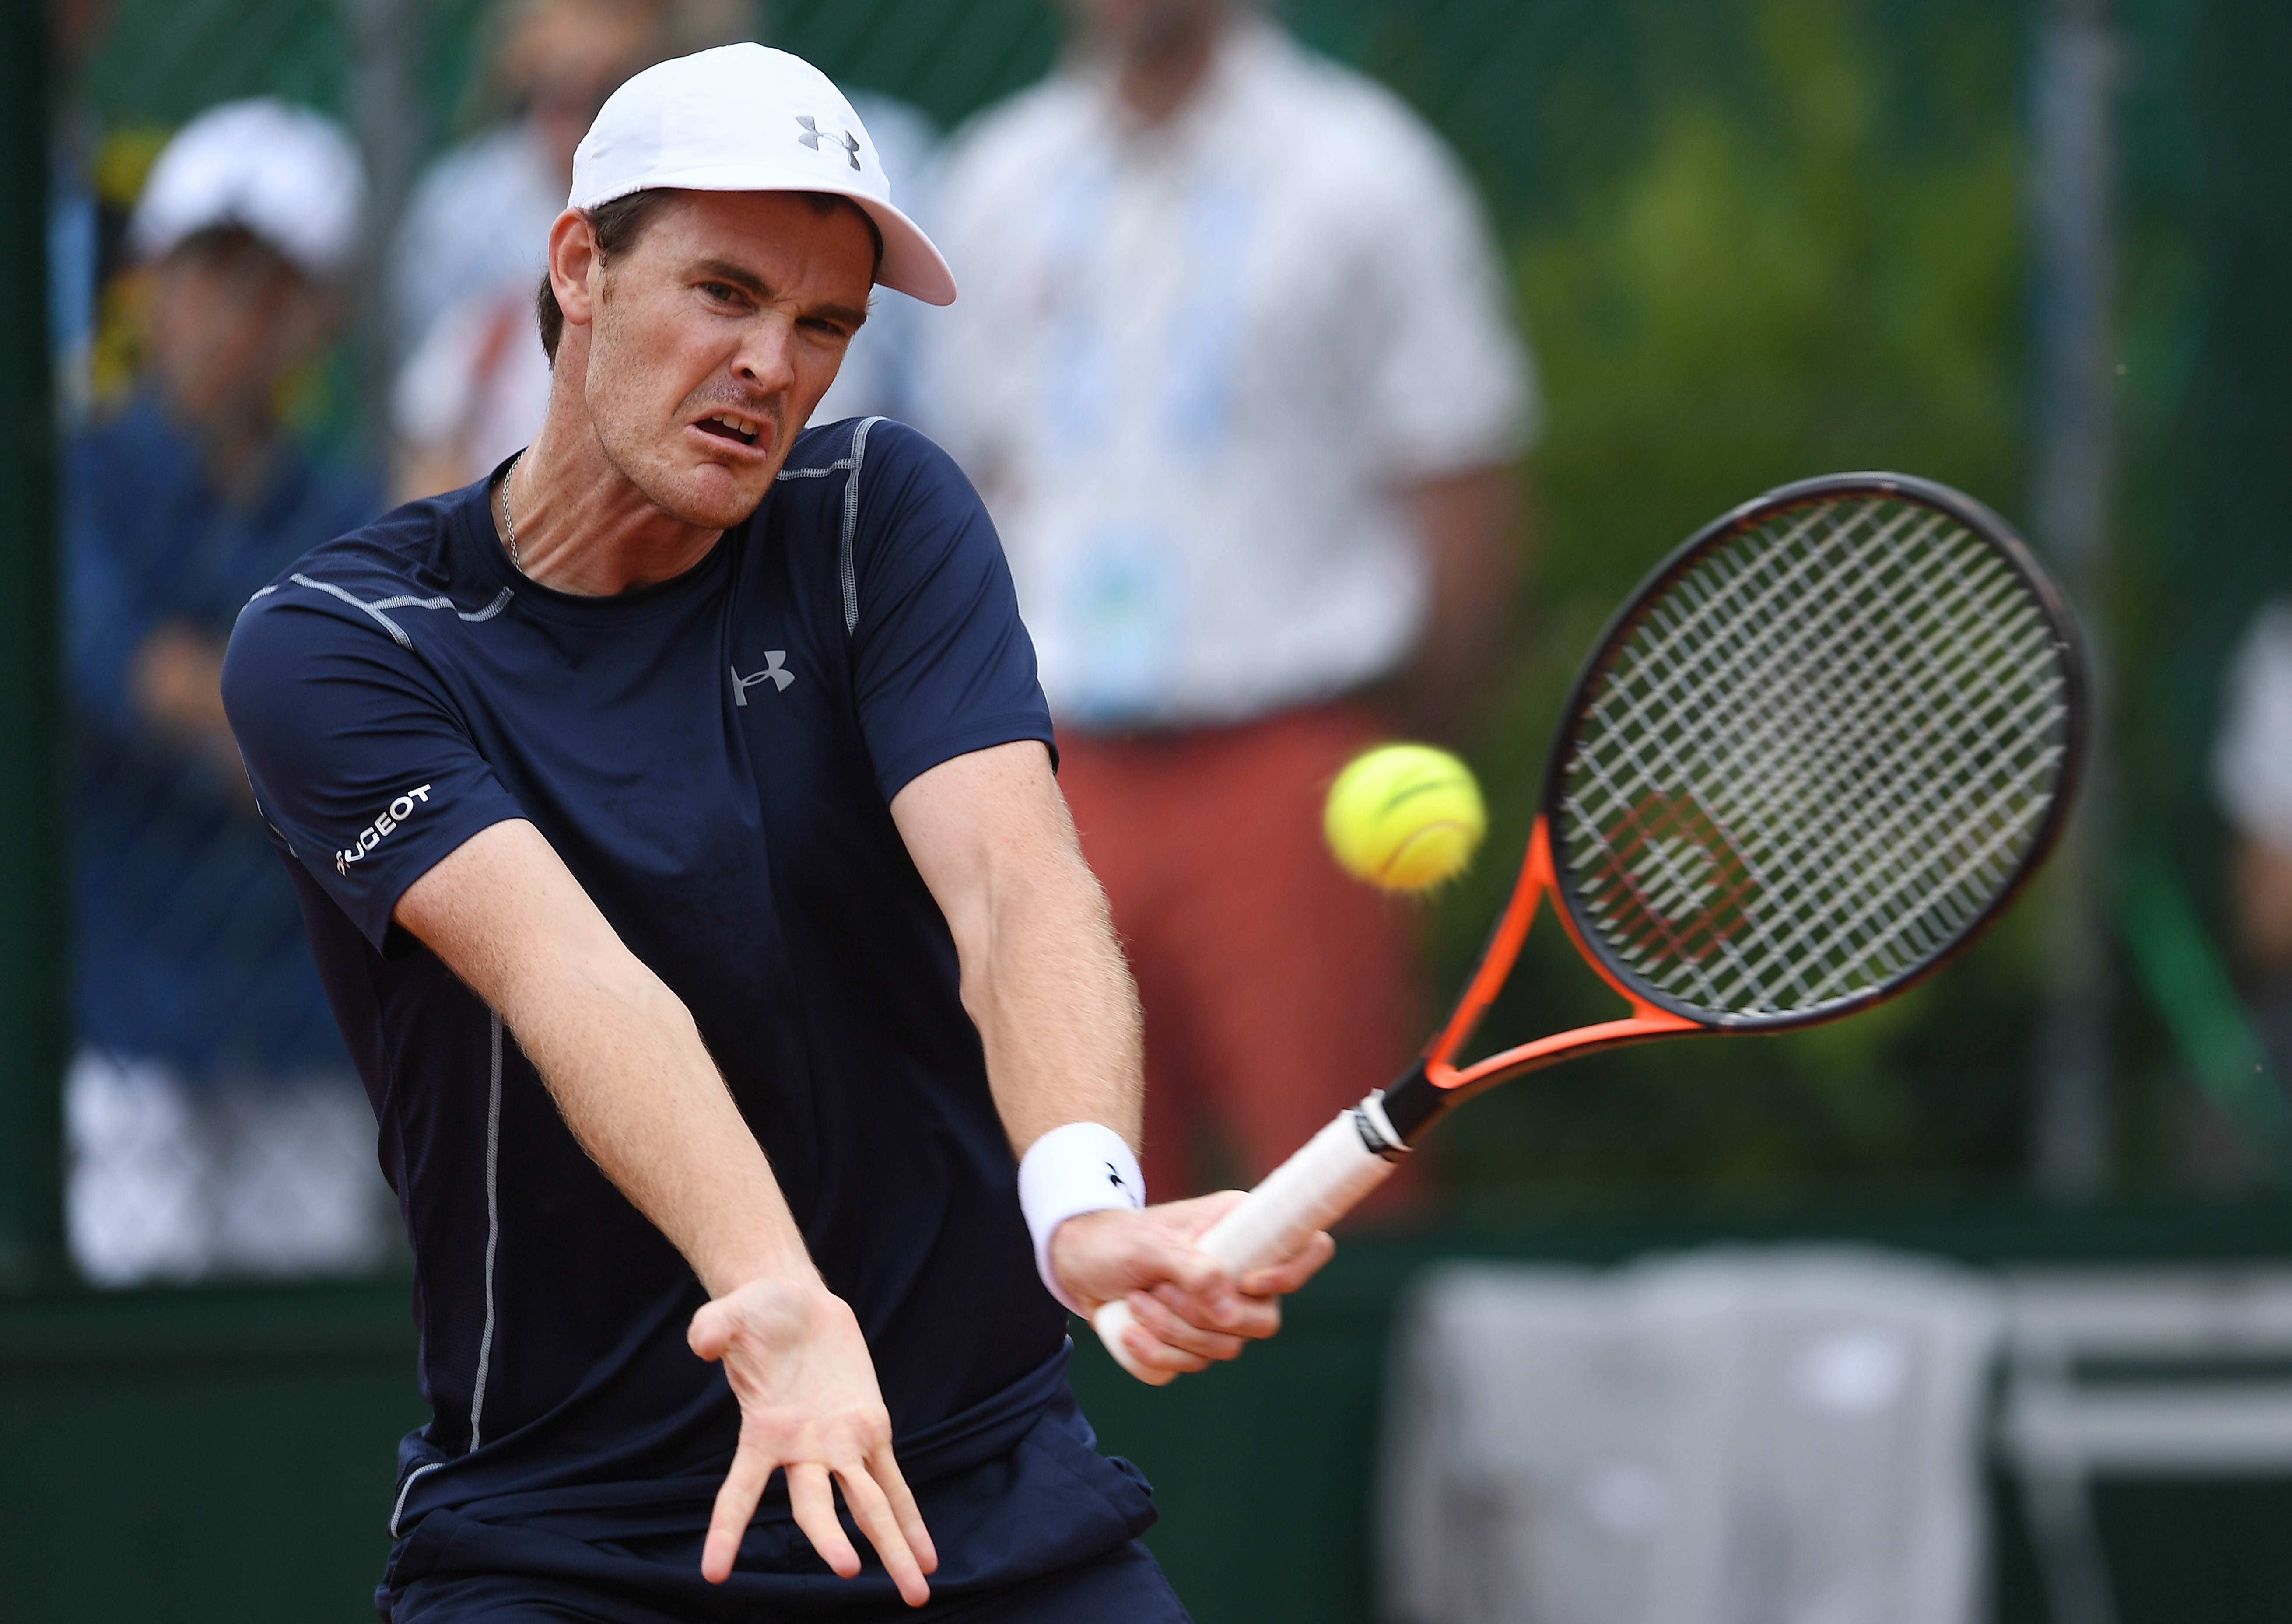 PARIS, FRANCE - MAY 28: Jamie Murray of Great Britain hits a forehand during the Men's Doubles second round match against David Guez of France and Vincent Millot of France on day seven of the 2016 French Open at Roland Garros on May 28, 2016 in Paris, France. (Photo by Dennis Grombkowski/Getty Images)